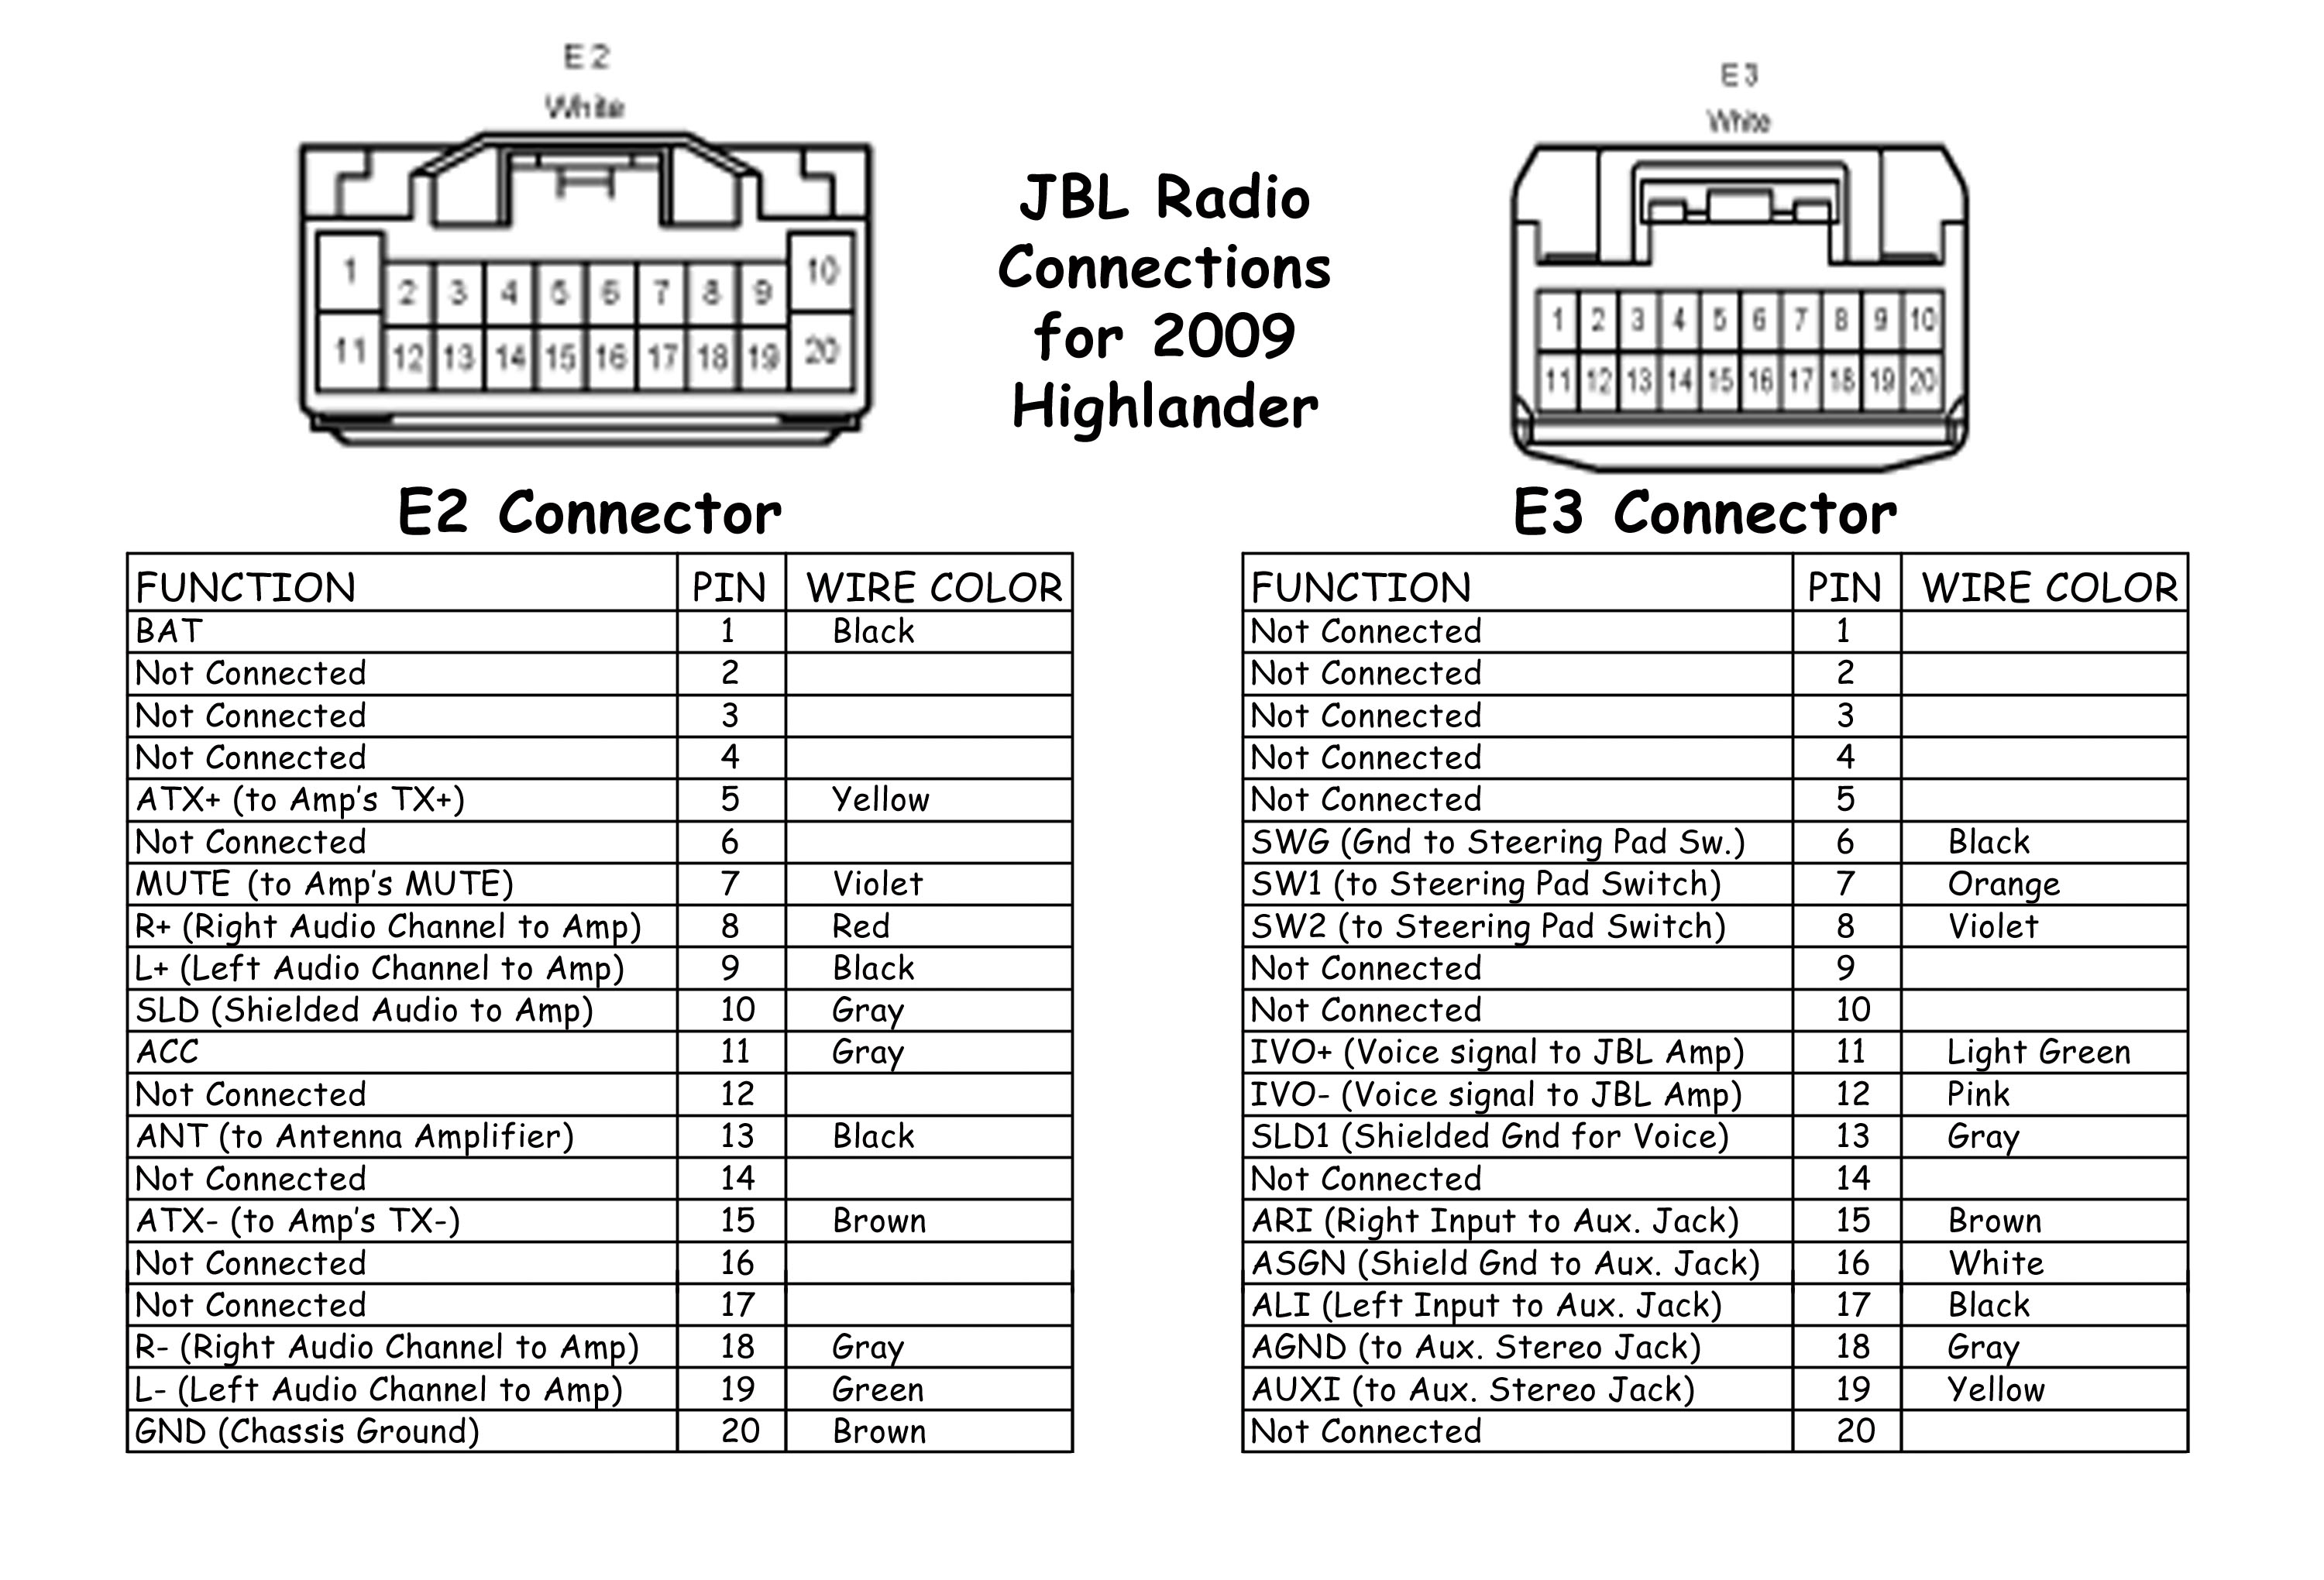 toyota sequoia stereo wiring diagram Download-toyota sequoia stereo wiring diagram Collection Wiring Diagram Toyota Ta a Radio Home Questions New DOWNLOAD Wiring Diagram 13-i